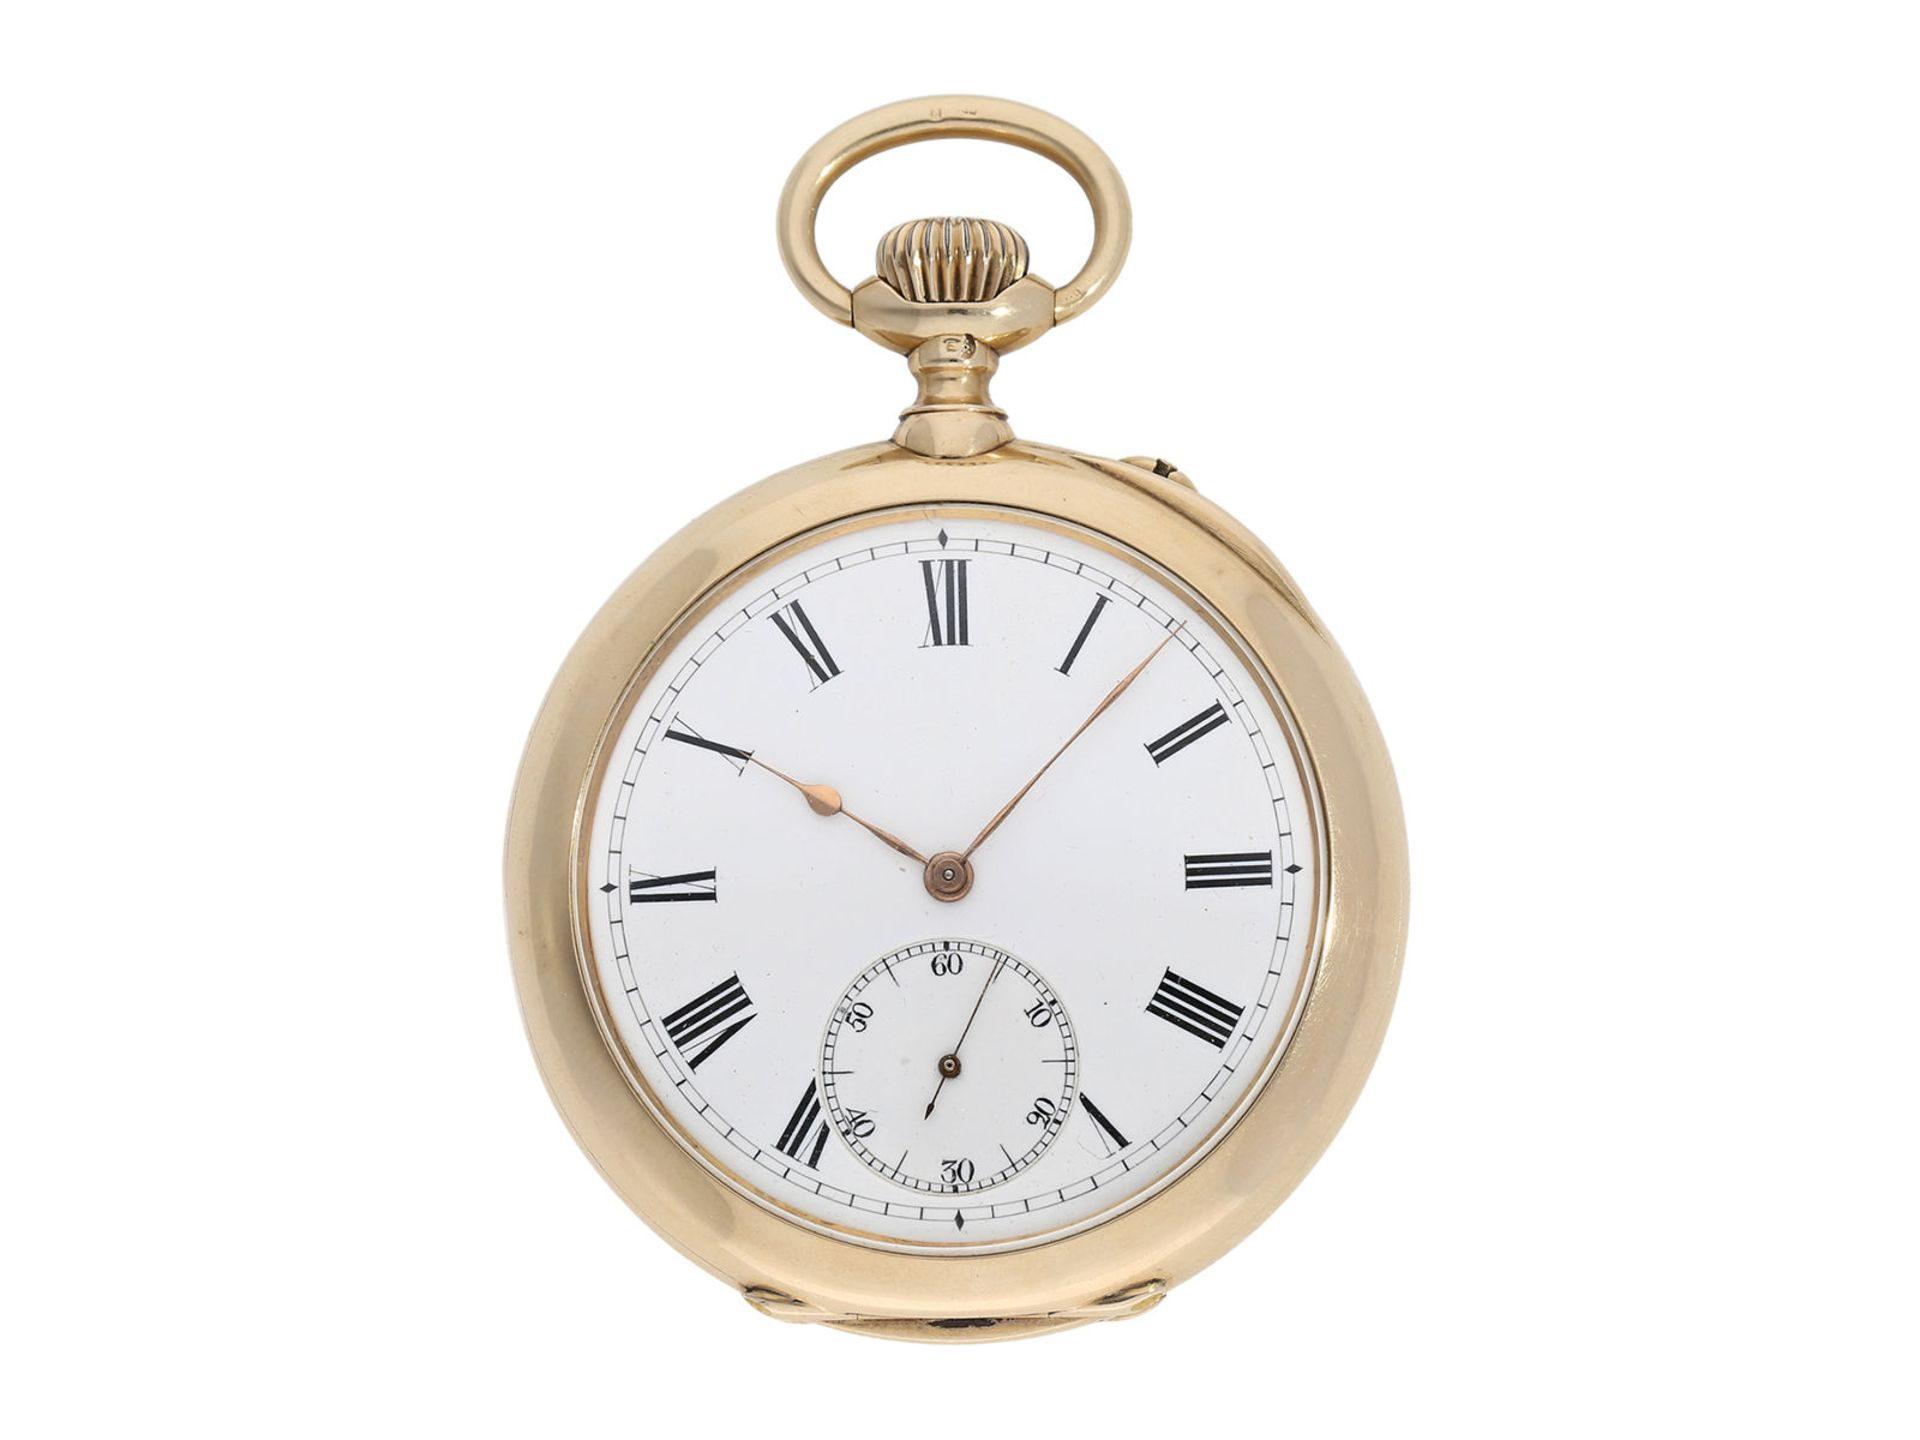 "Pocket watch: very rare IWC precision pocket watch quality ""EXTRA"", No. 181428, Schaffhausen ca."